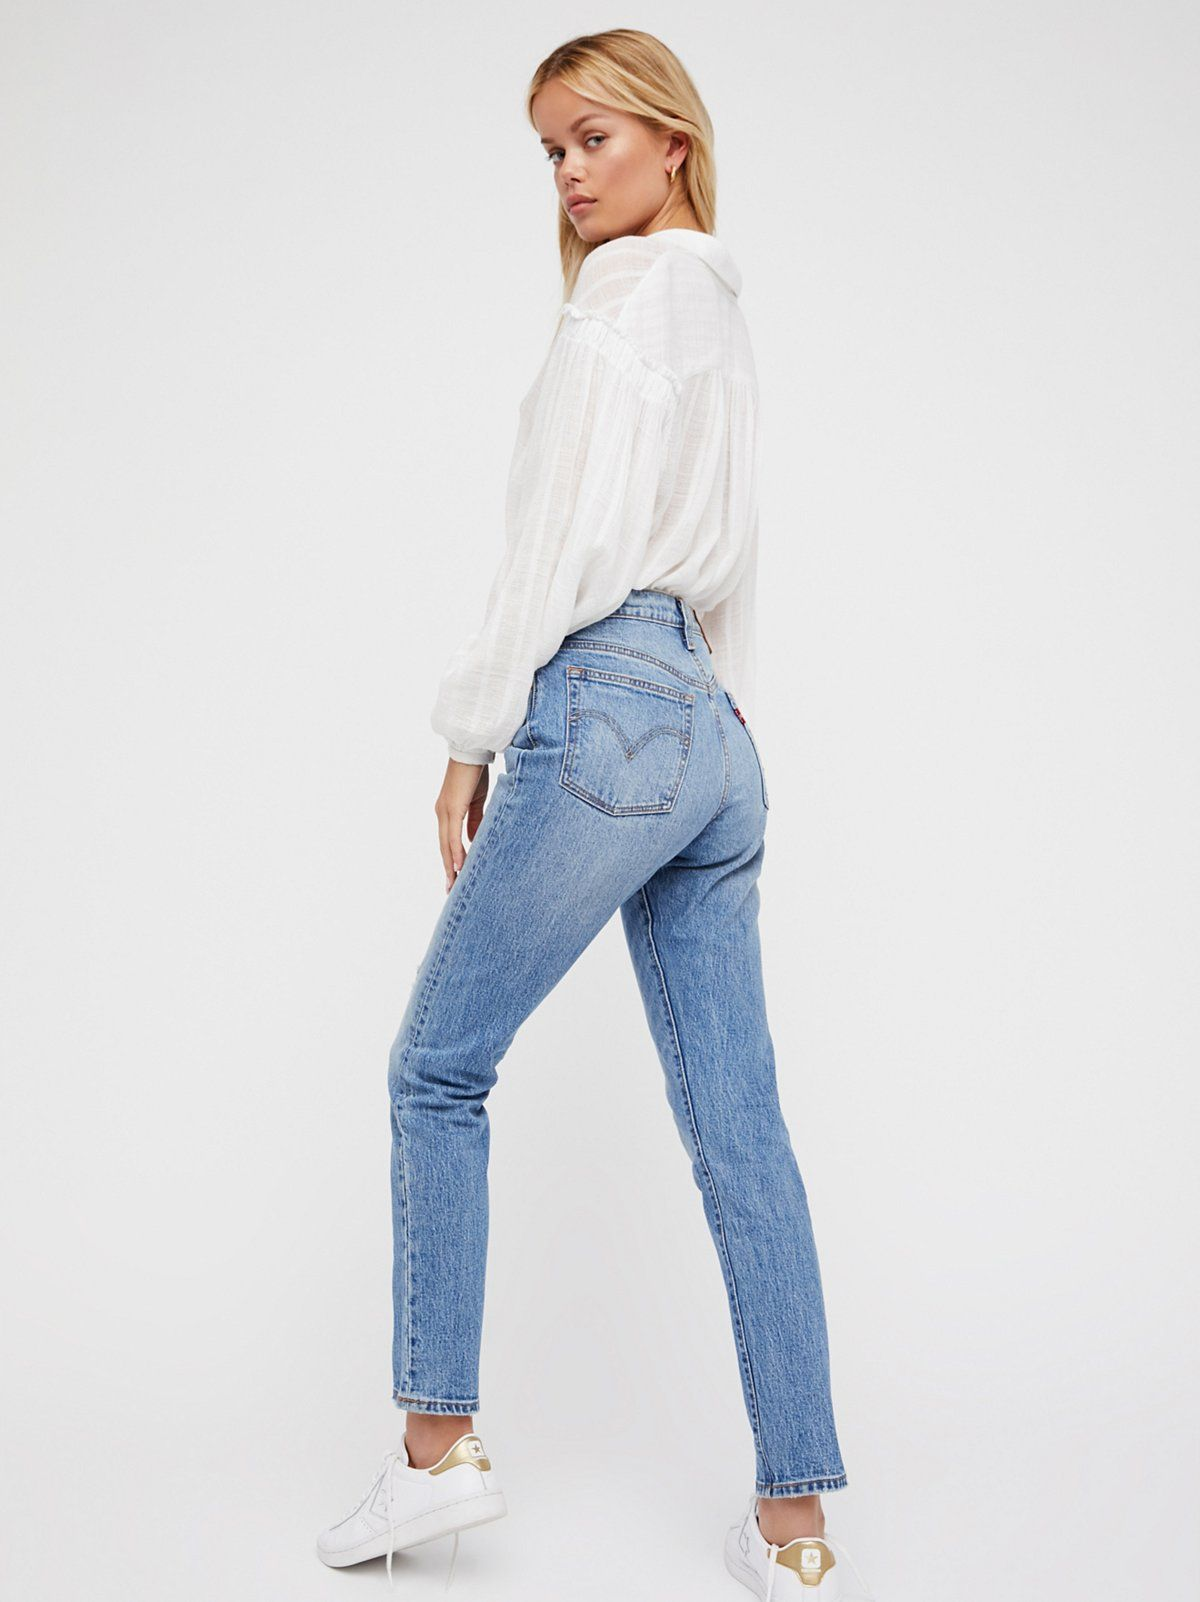 9e40d259 501 Skinny Jeans | The iconic Levi's 501 has been reimagined with a slimmer  skinny leg and a high-rise. * Fits straight through the hip and thigh ...